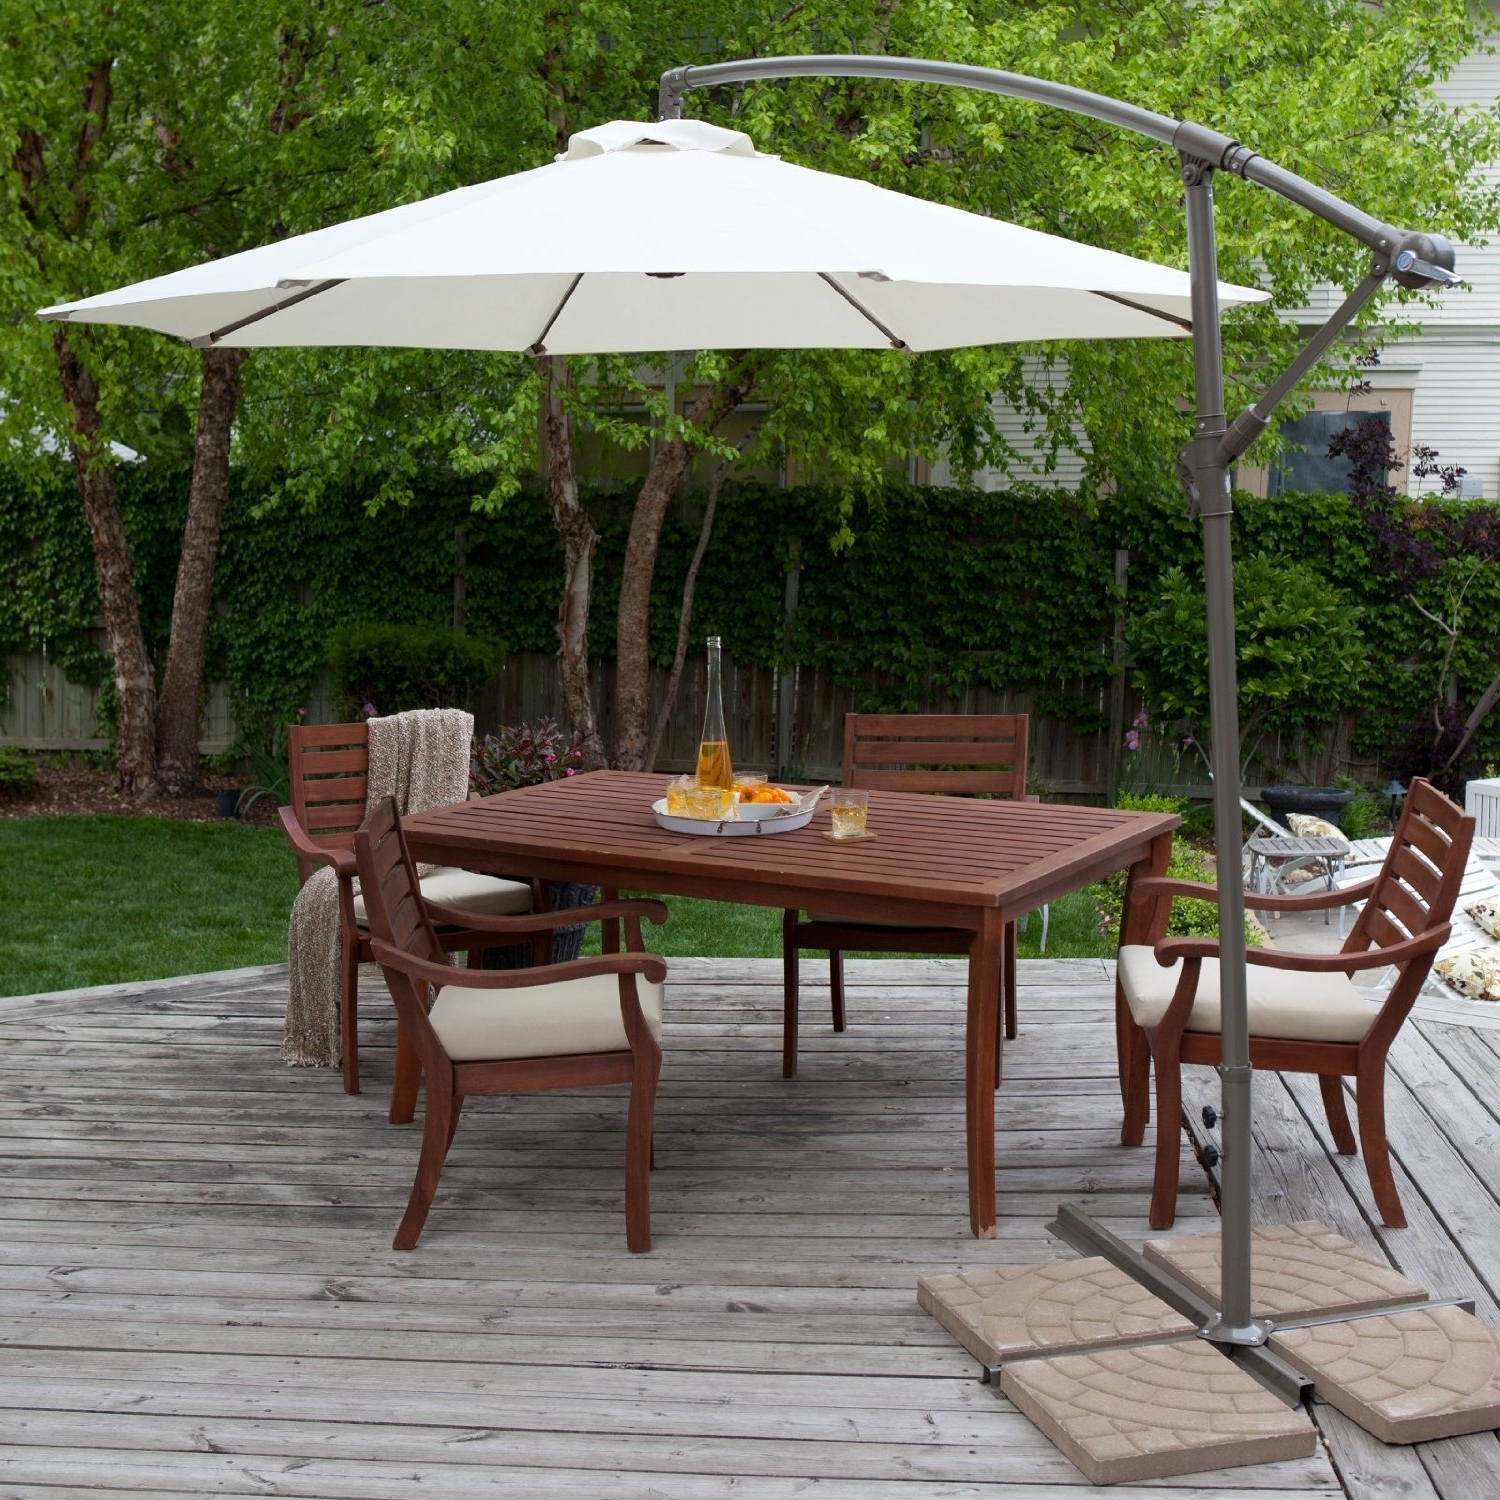 Interior : Patio Table Chairs Umbrella Set New Furniture Sets With Intended For Trendy Patio Sets With Umbrellas (Gallery 15 of 20)